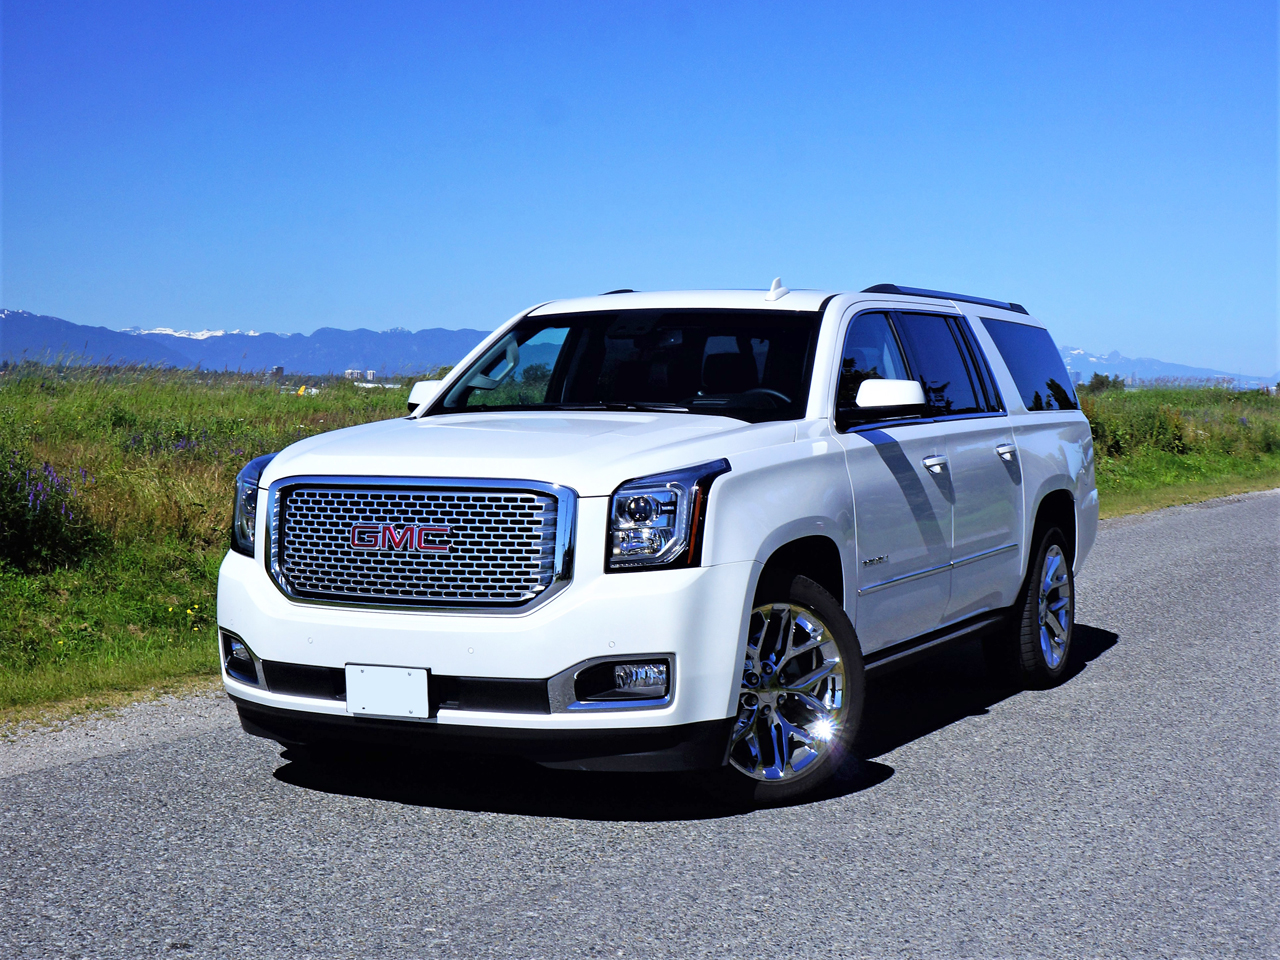 2017 Gmc Yukon Xl Denali Road Test